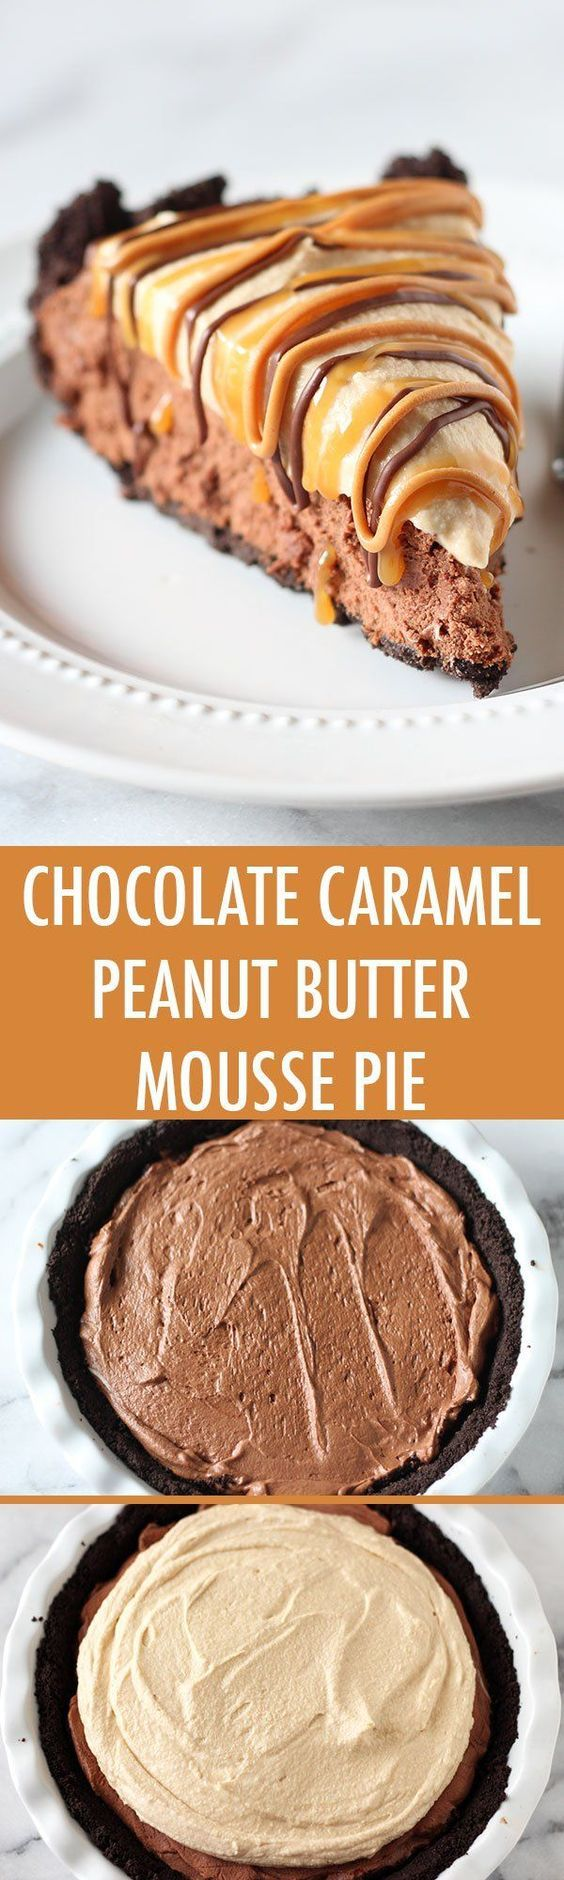 144 best images about Recipes for Pies on Pinterest ...